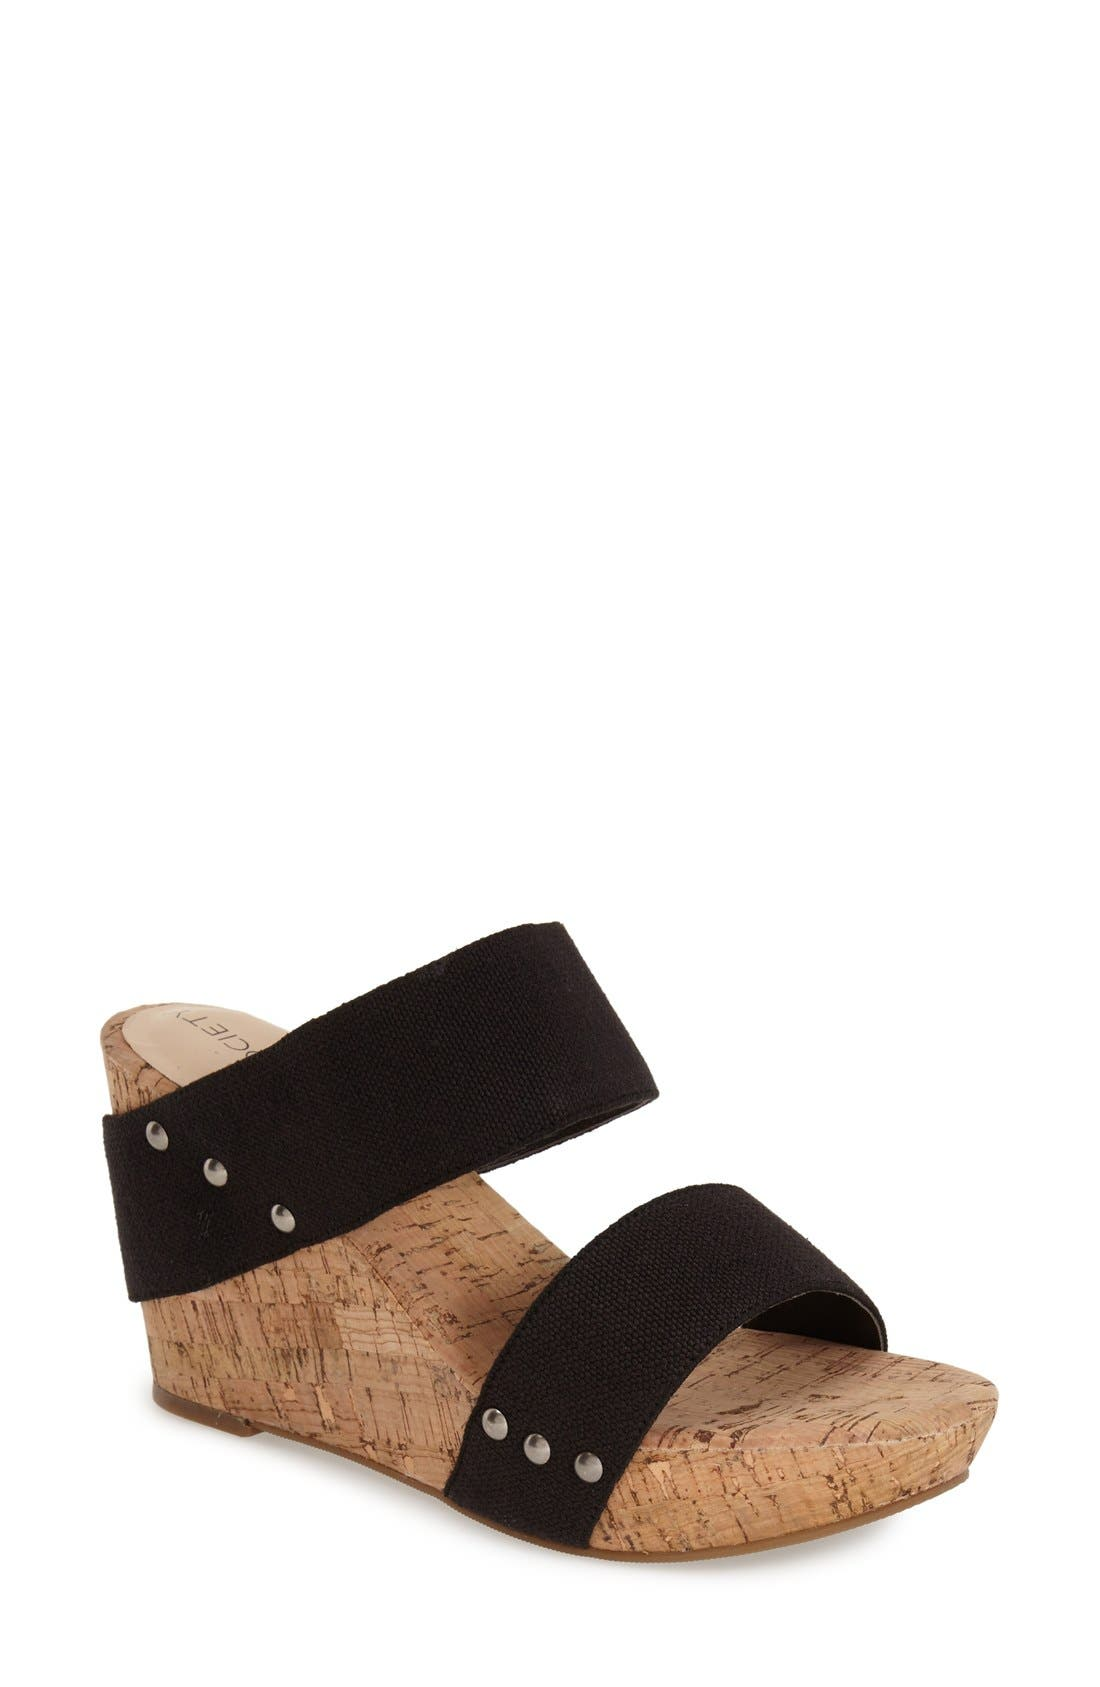 'Emilia 2' Wedge Sandal,                         Main,                         color, 001